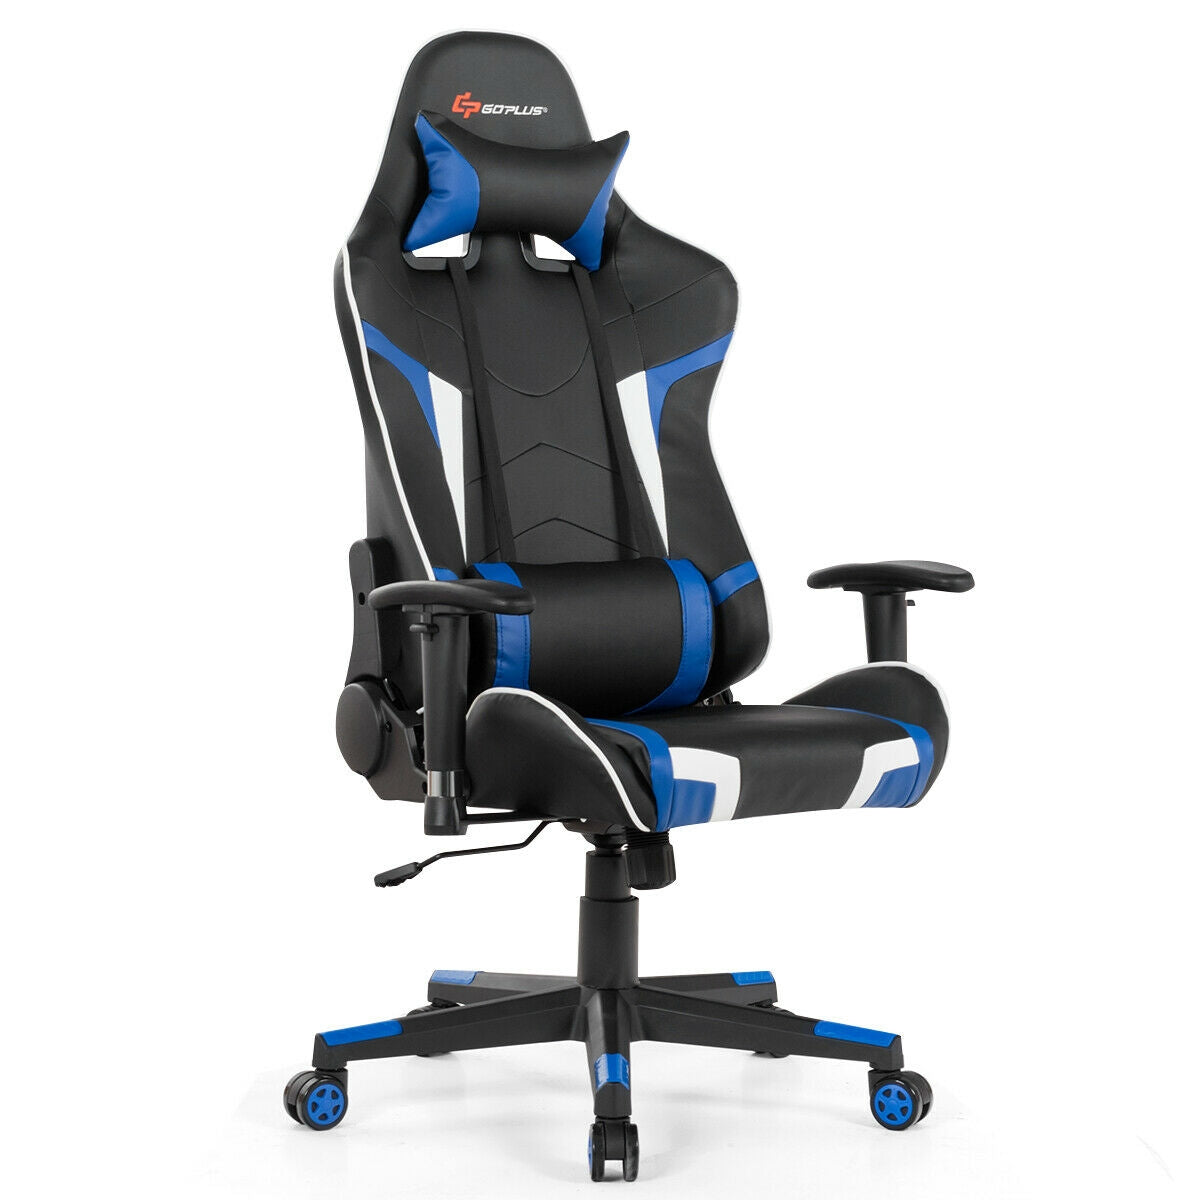 Massage Gaming Chair with Lumbar Support and Headrest - Blue